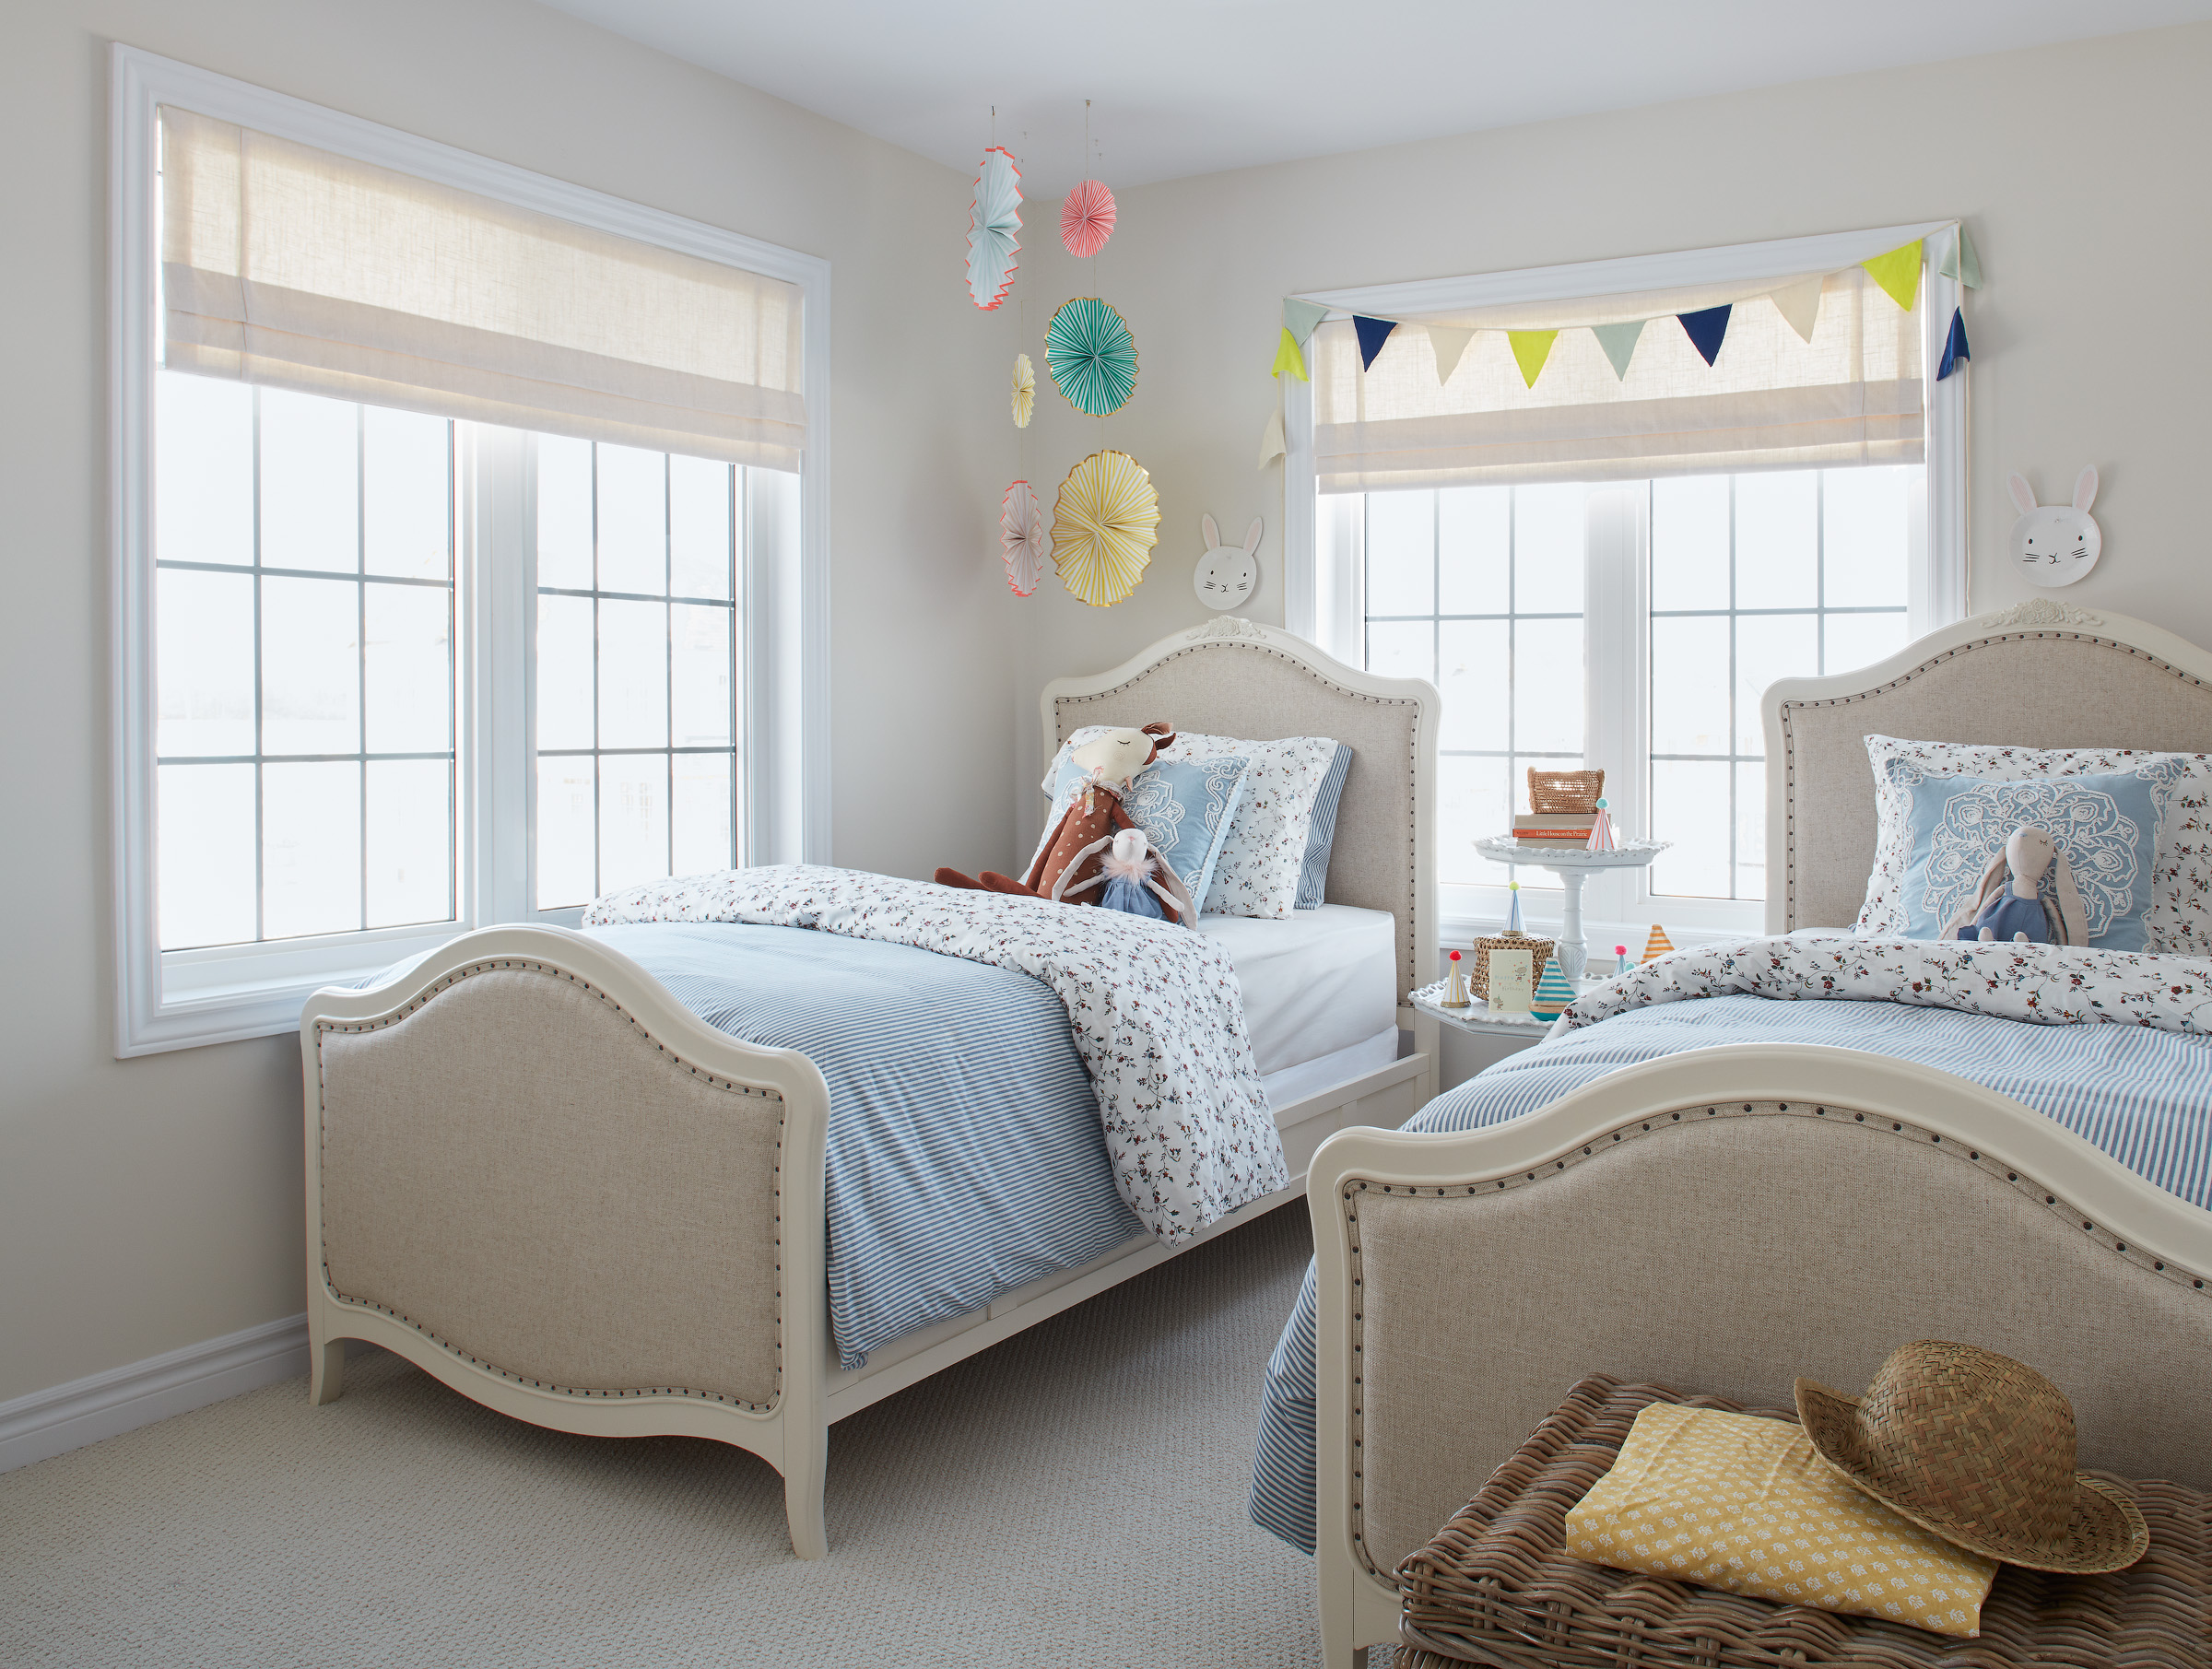 Shabby Chic children's bedroom with two beds, blue bedding, and colourful accents